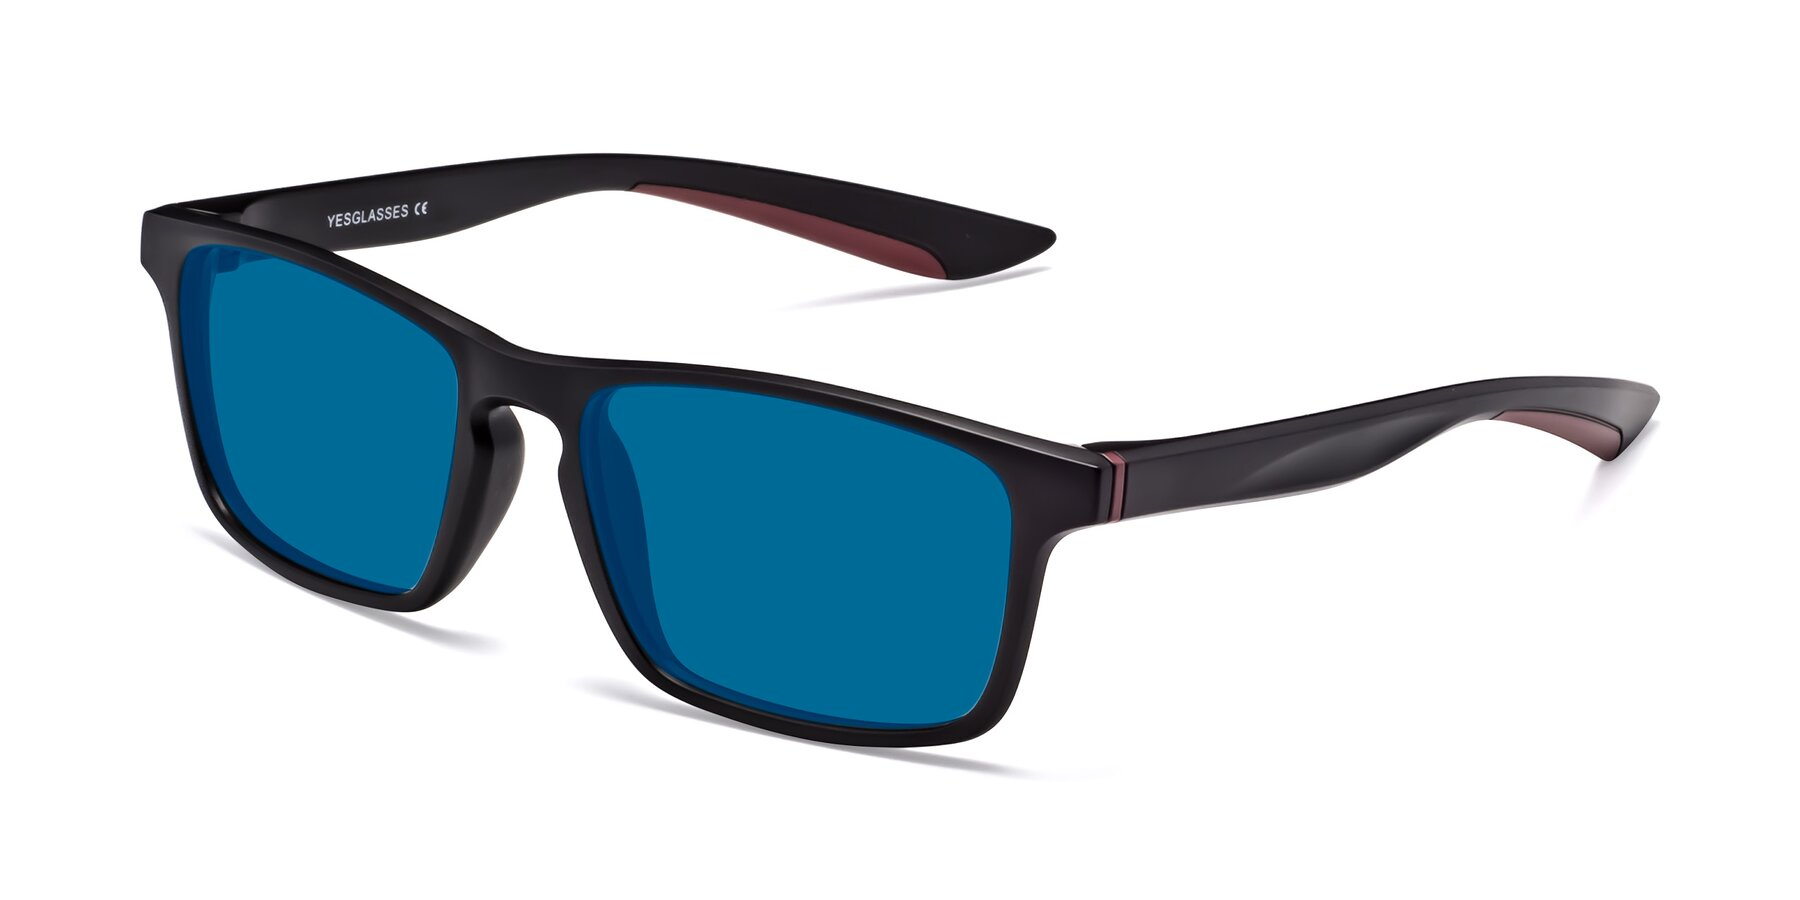 Angle of Passion in Matte Black-Wine with Blue Tinted Lenses